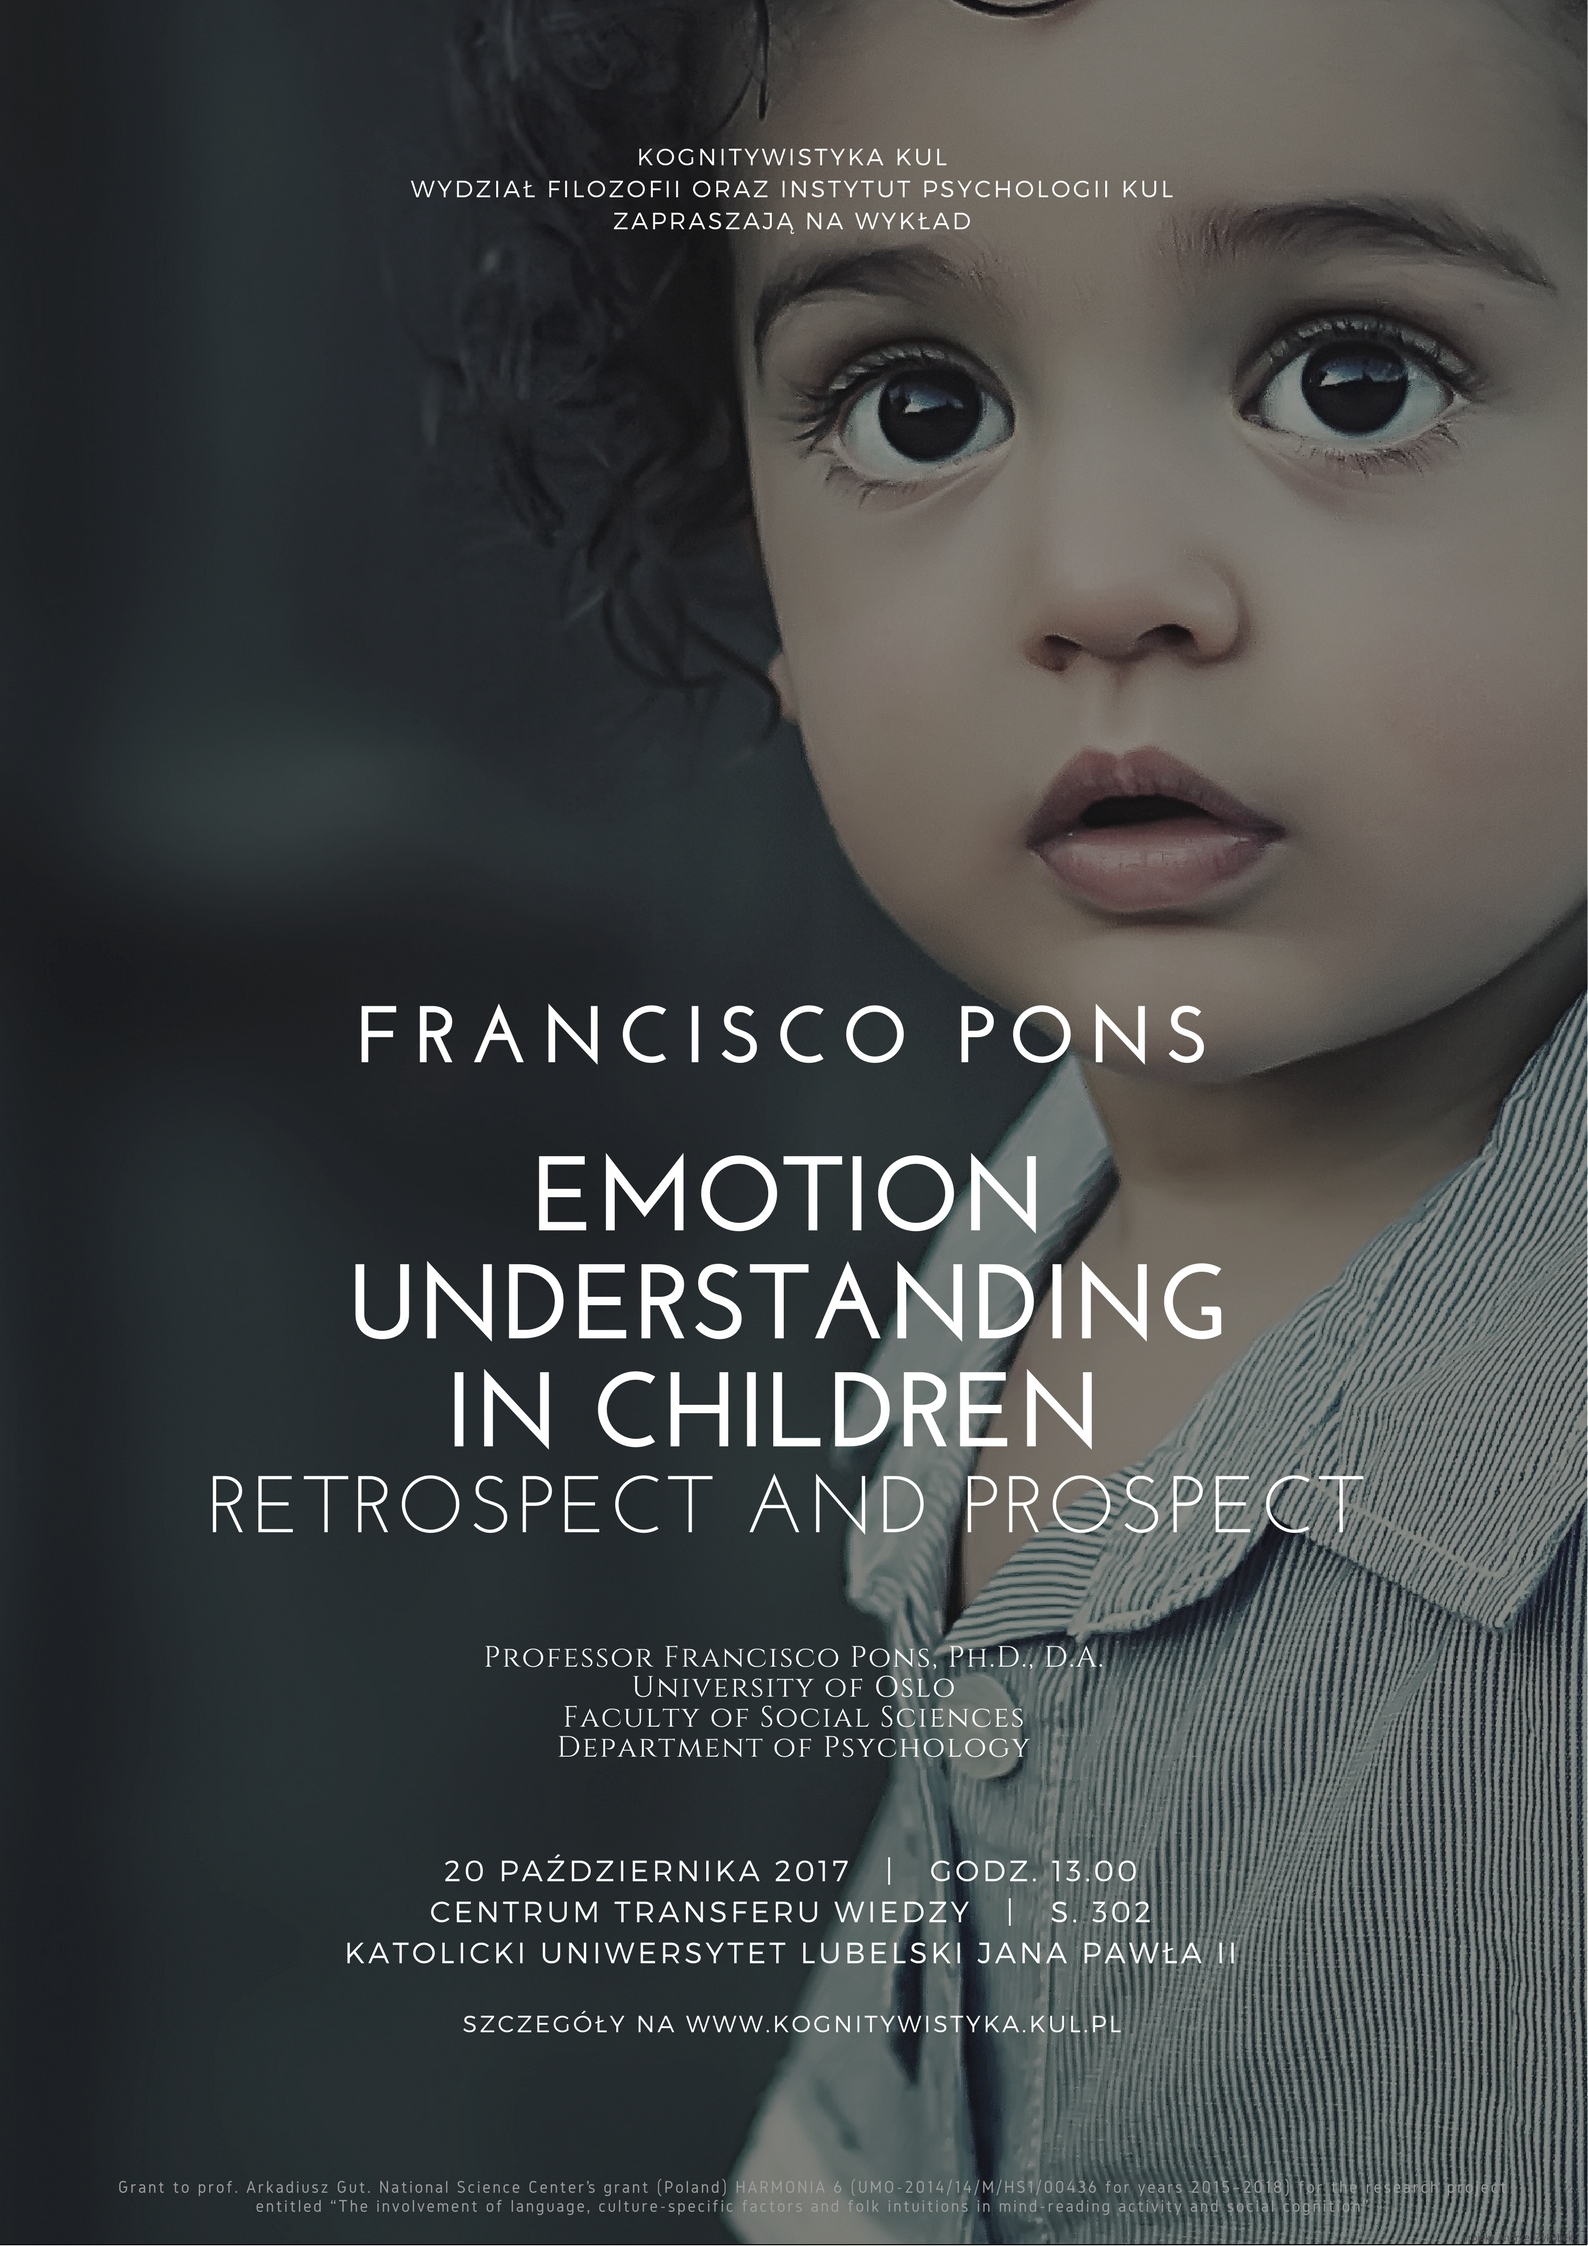 Francisco Pons - Emotion understanding in children. Retrospect and prospect